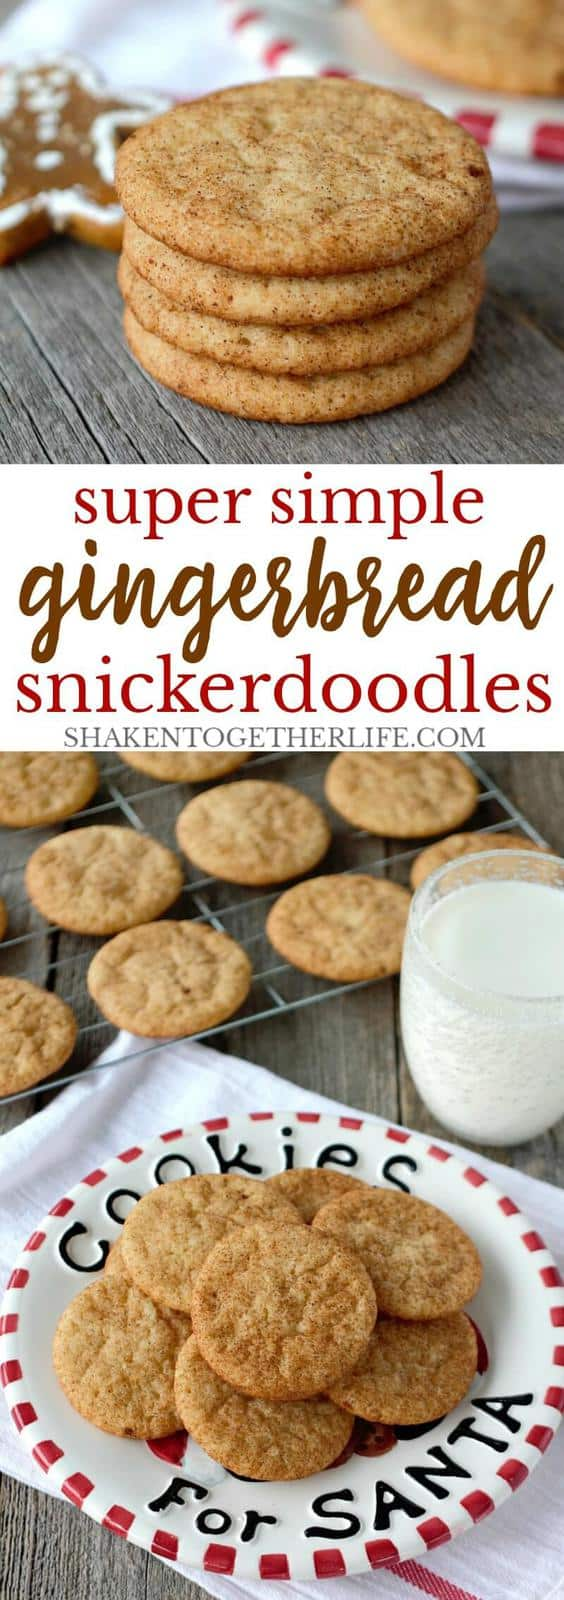 Cookies don't get easier than these Super Simple Gingerbread Snickerdoodles! These simple Christmas cookies are perfect for cookie exchanges or to leave for Santa!